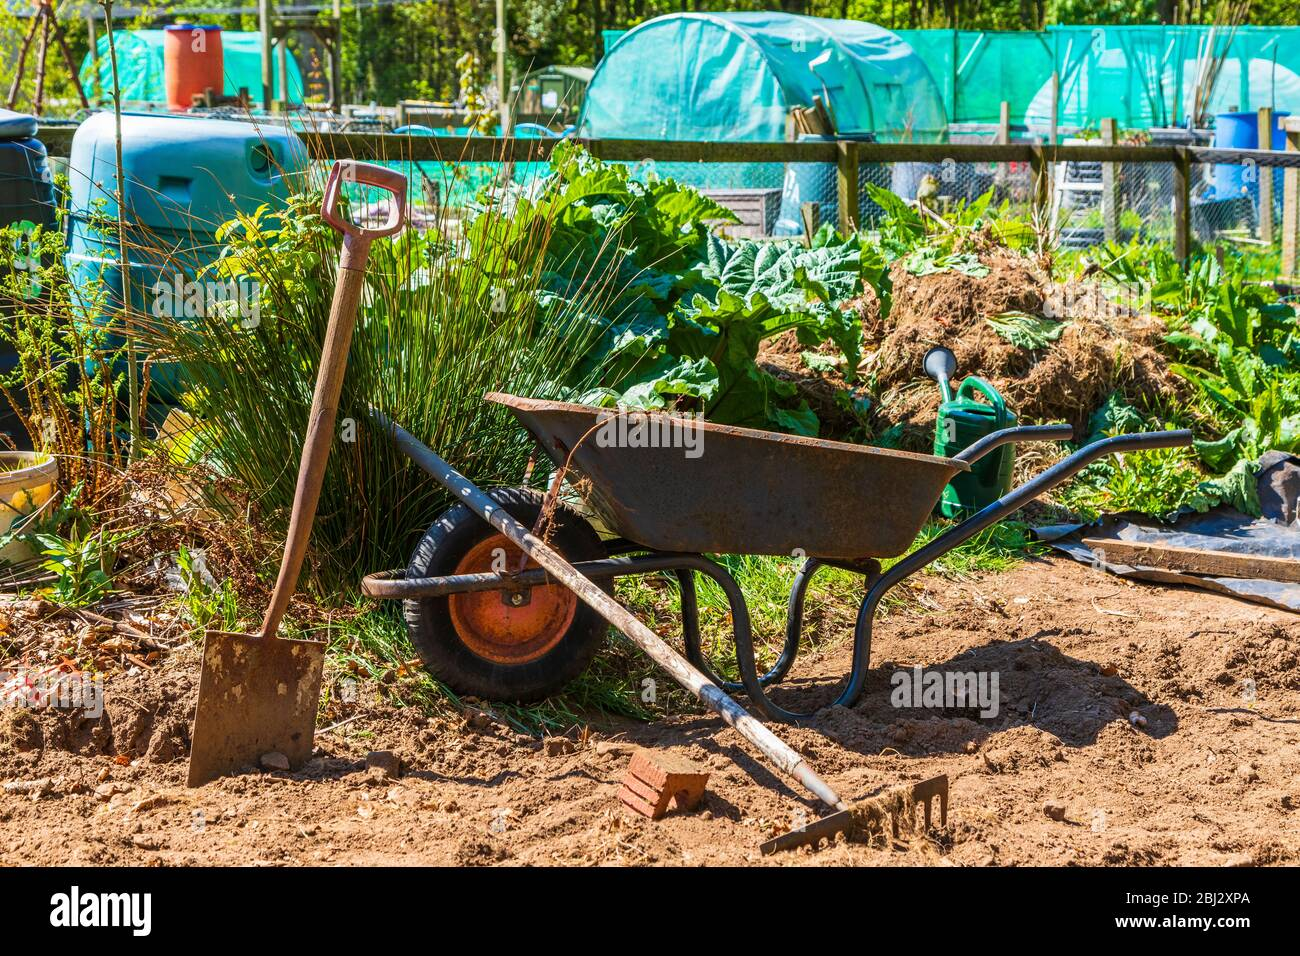 Detail of allotments in Troon allotments society gardens, Troon, Ayrshire, Scotland, UK Stock Photo